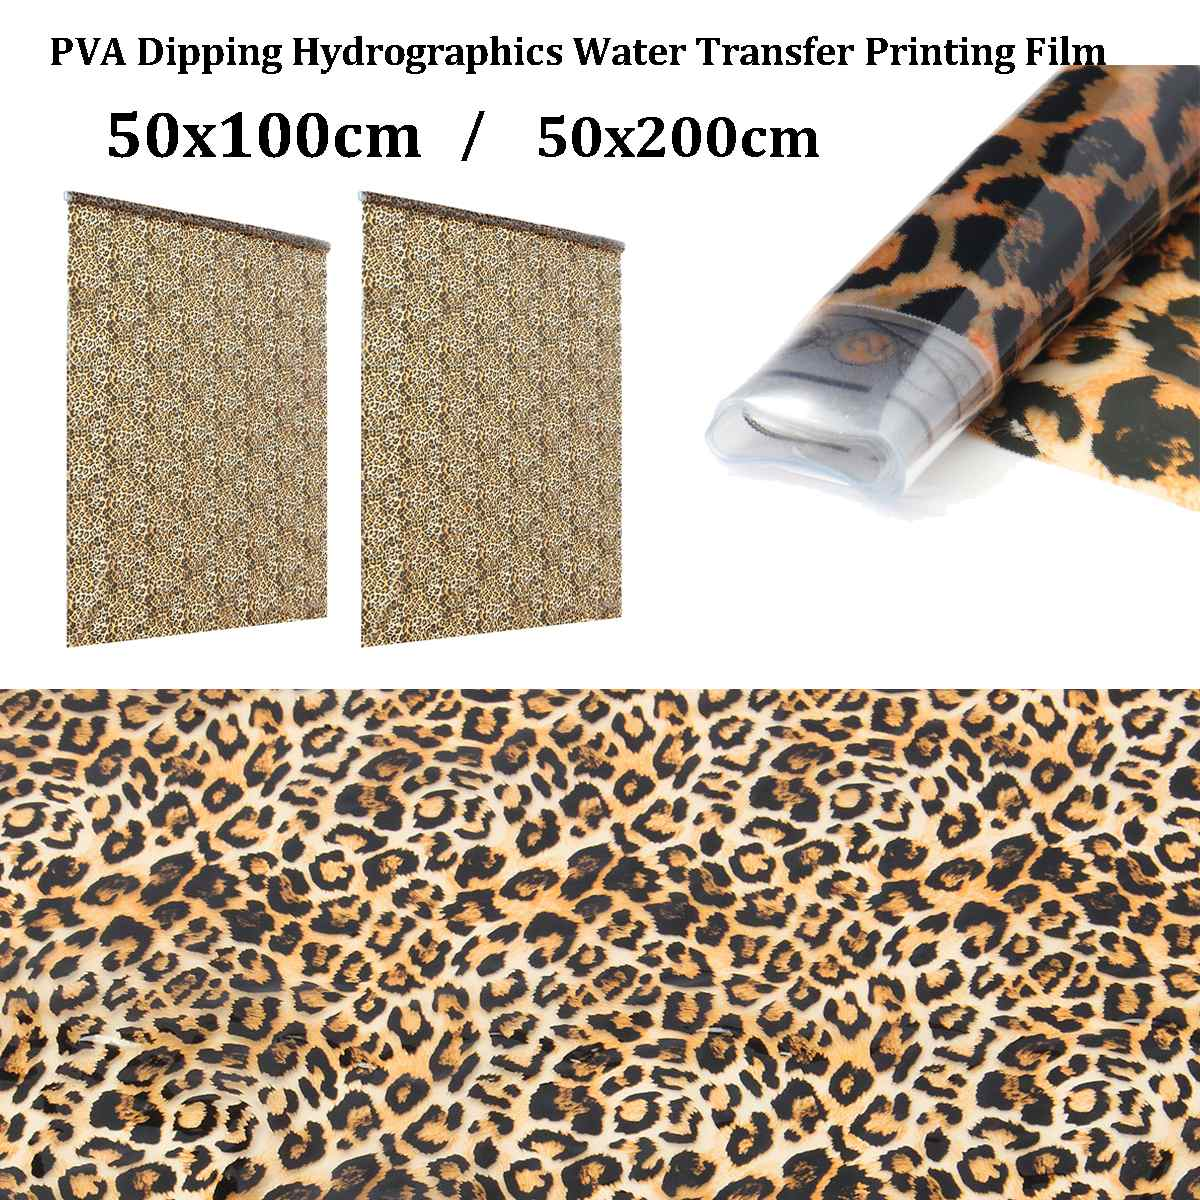 50x100cm/50x200cm PVA Hydrographic Film Water Transfer Printing Film Hydro Dip Style Decals Stickers